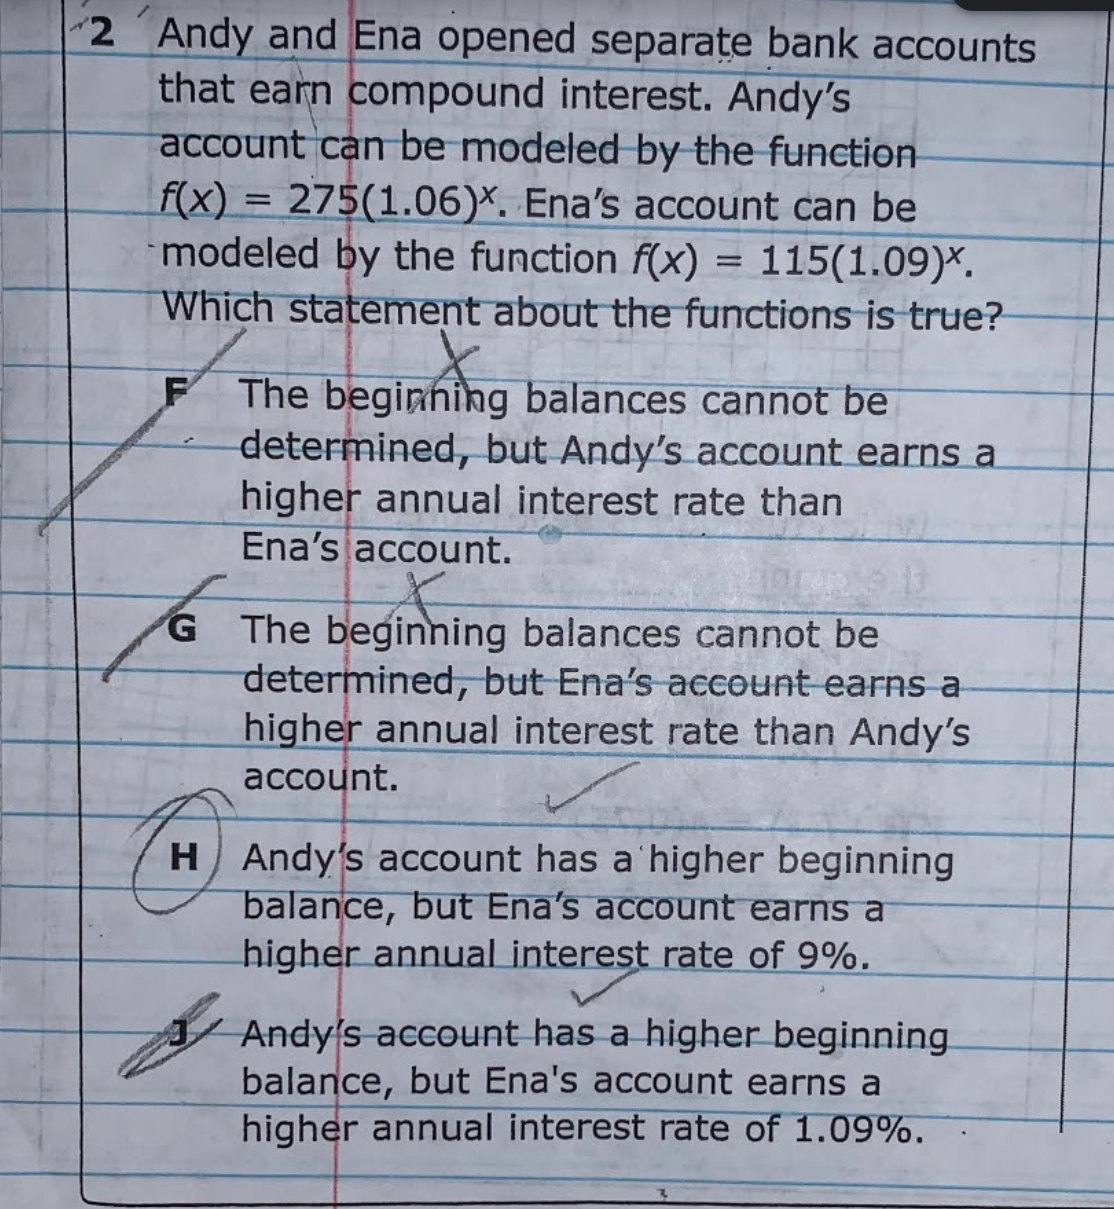 2 Andy and Ena opened separate bank accounts that earn compound interest. Andy's account can be modeled by the function f(x) = 275(1.06)*. Ena's account can be modeled by the function f(x) = 115(1.09)*. Which statement about the functions is true? The beginhing balances cannot be determined, but Andy's account earns a higher annual interest rate than Ena's account. The beginning balances cannot be determined, but Ena's account earns a higher annual interest rate than Andy's account. G. HAndy's account has a'higher beginning balance, but Ena's account earns a higher annual interest rate of 9%. A Andy's account has a higher beginning. balance, but Ena's account earns a higher annual interest rate of 1.09%.